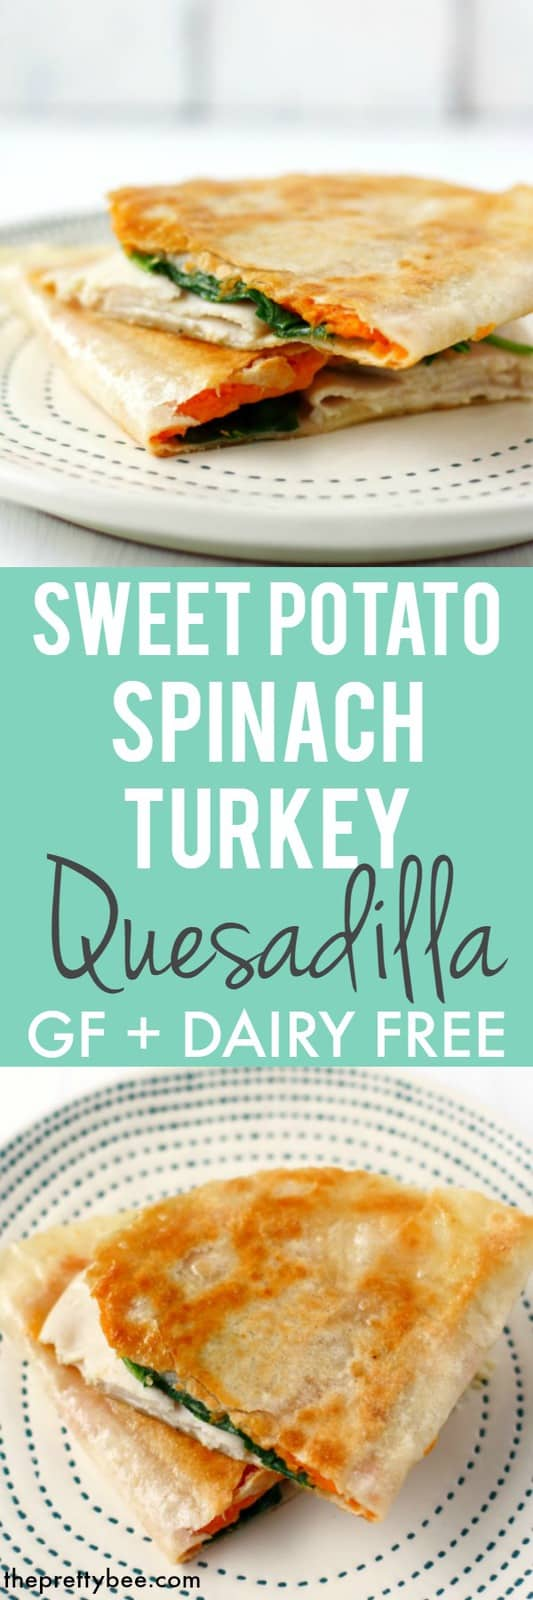 These gluten free turkey quesadillas are full of spinach, dairy free cheese, and sweet potatoes to make a tasty meal! #glutenfree #dairyfree